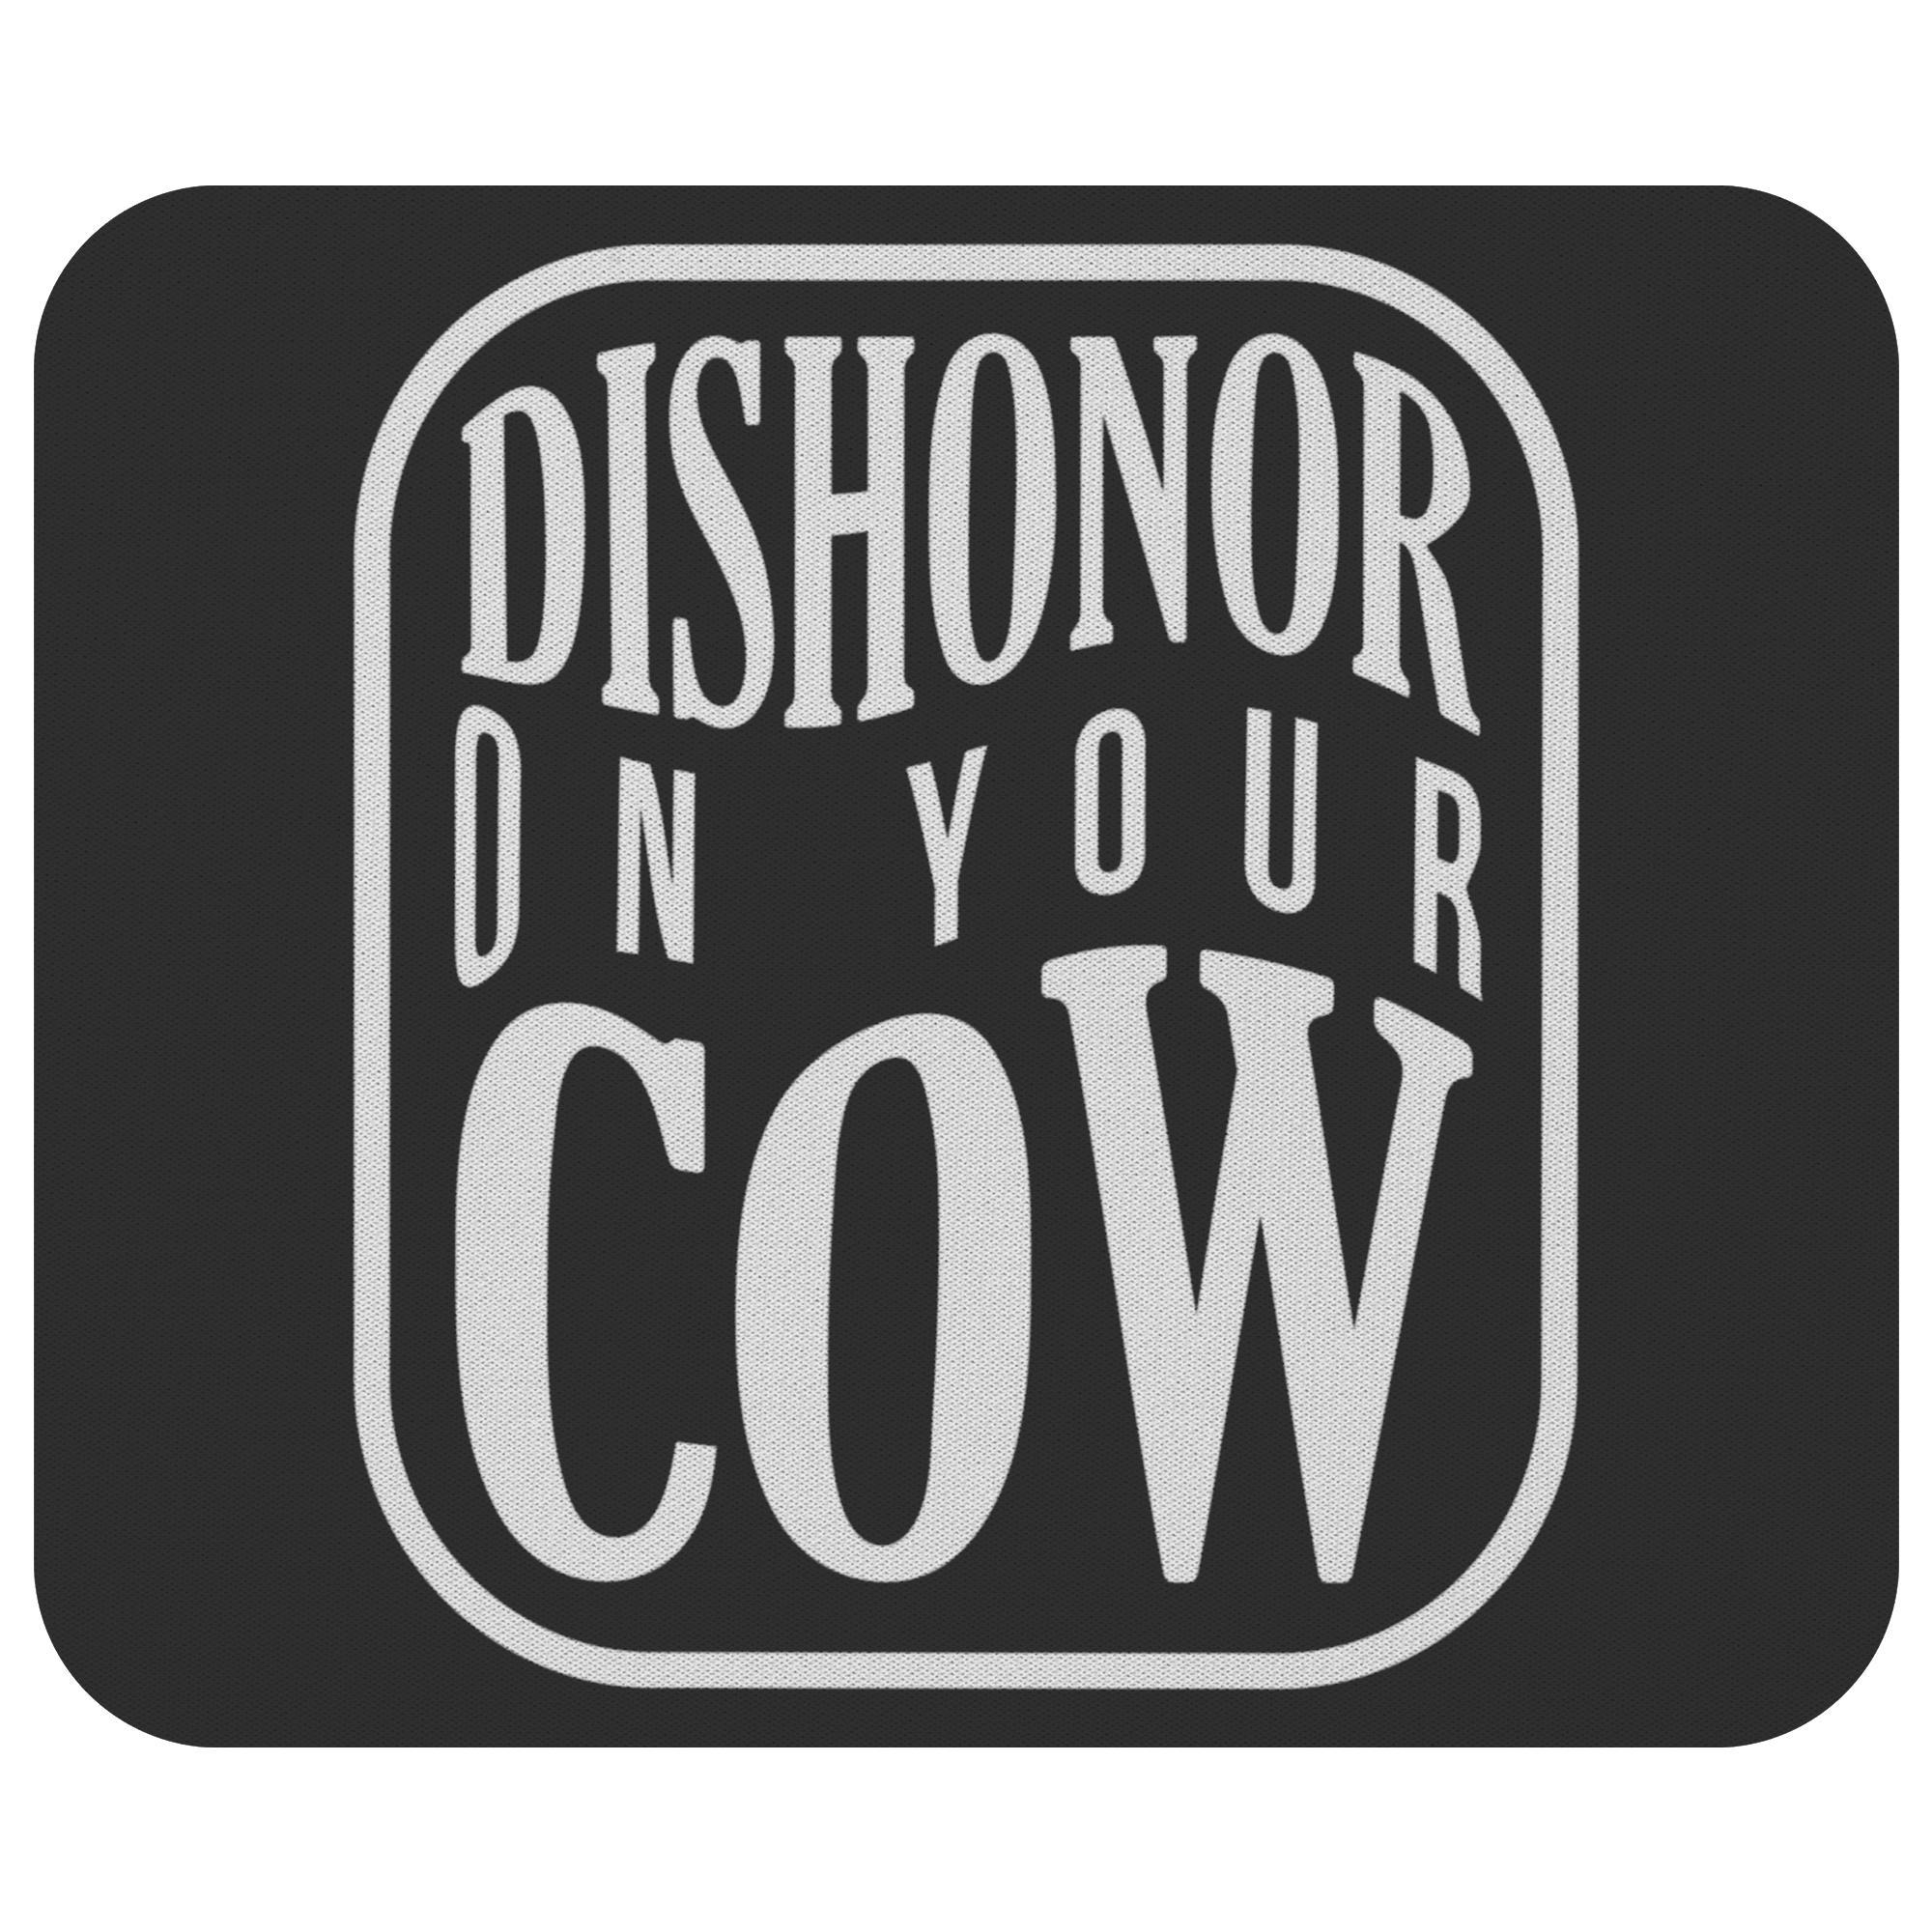 Dishonor On Your Cow Mouse Pad Unique Snarky Funny Humor Gift Ideas Sarcasm-Mousepads-Black-JoyHip.Com